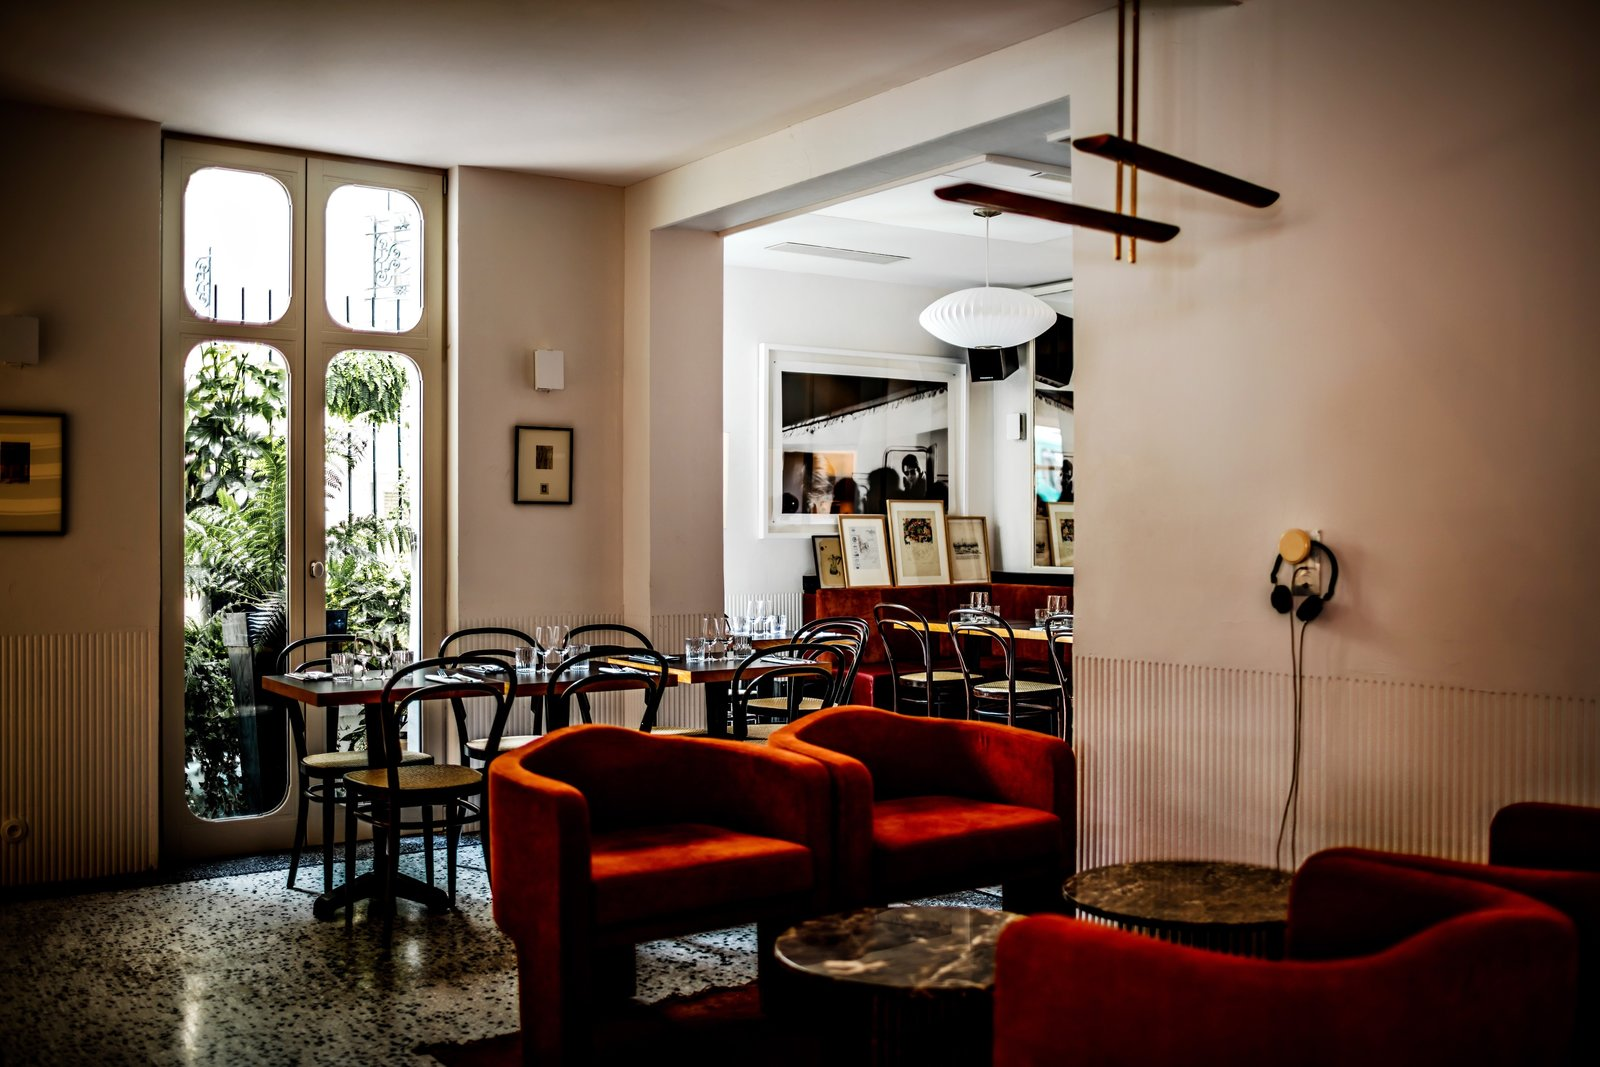 The hotel's restaurant spills into the lobby, promoting the idea that the ground floor functions more as a whole and less as individual spaces. Collaboration Reigns  Over This Parisian Neighborhood Hotel - Photo 7 of 8